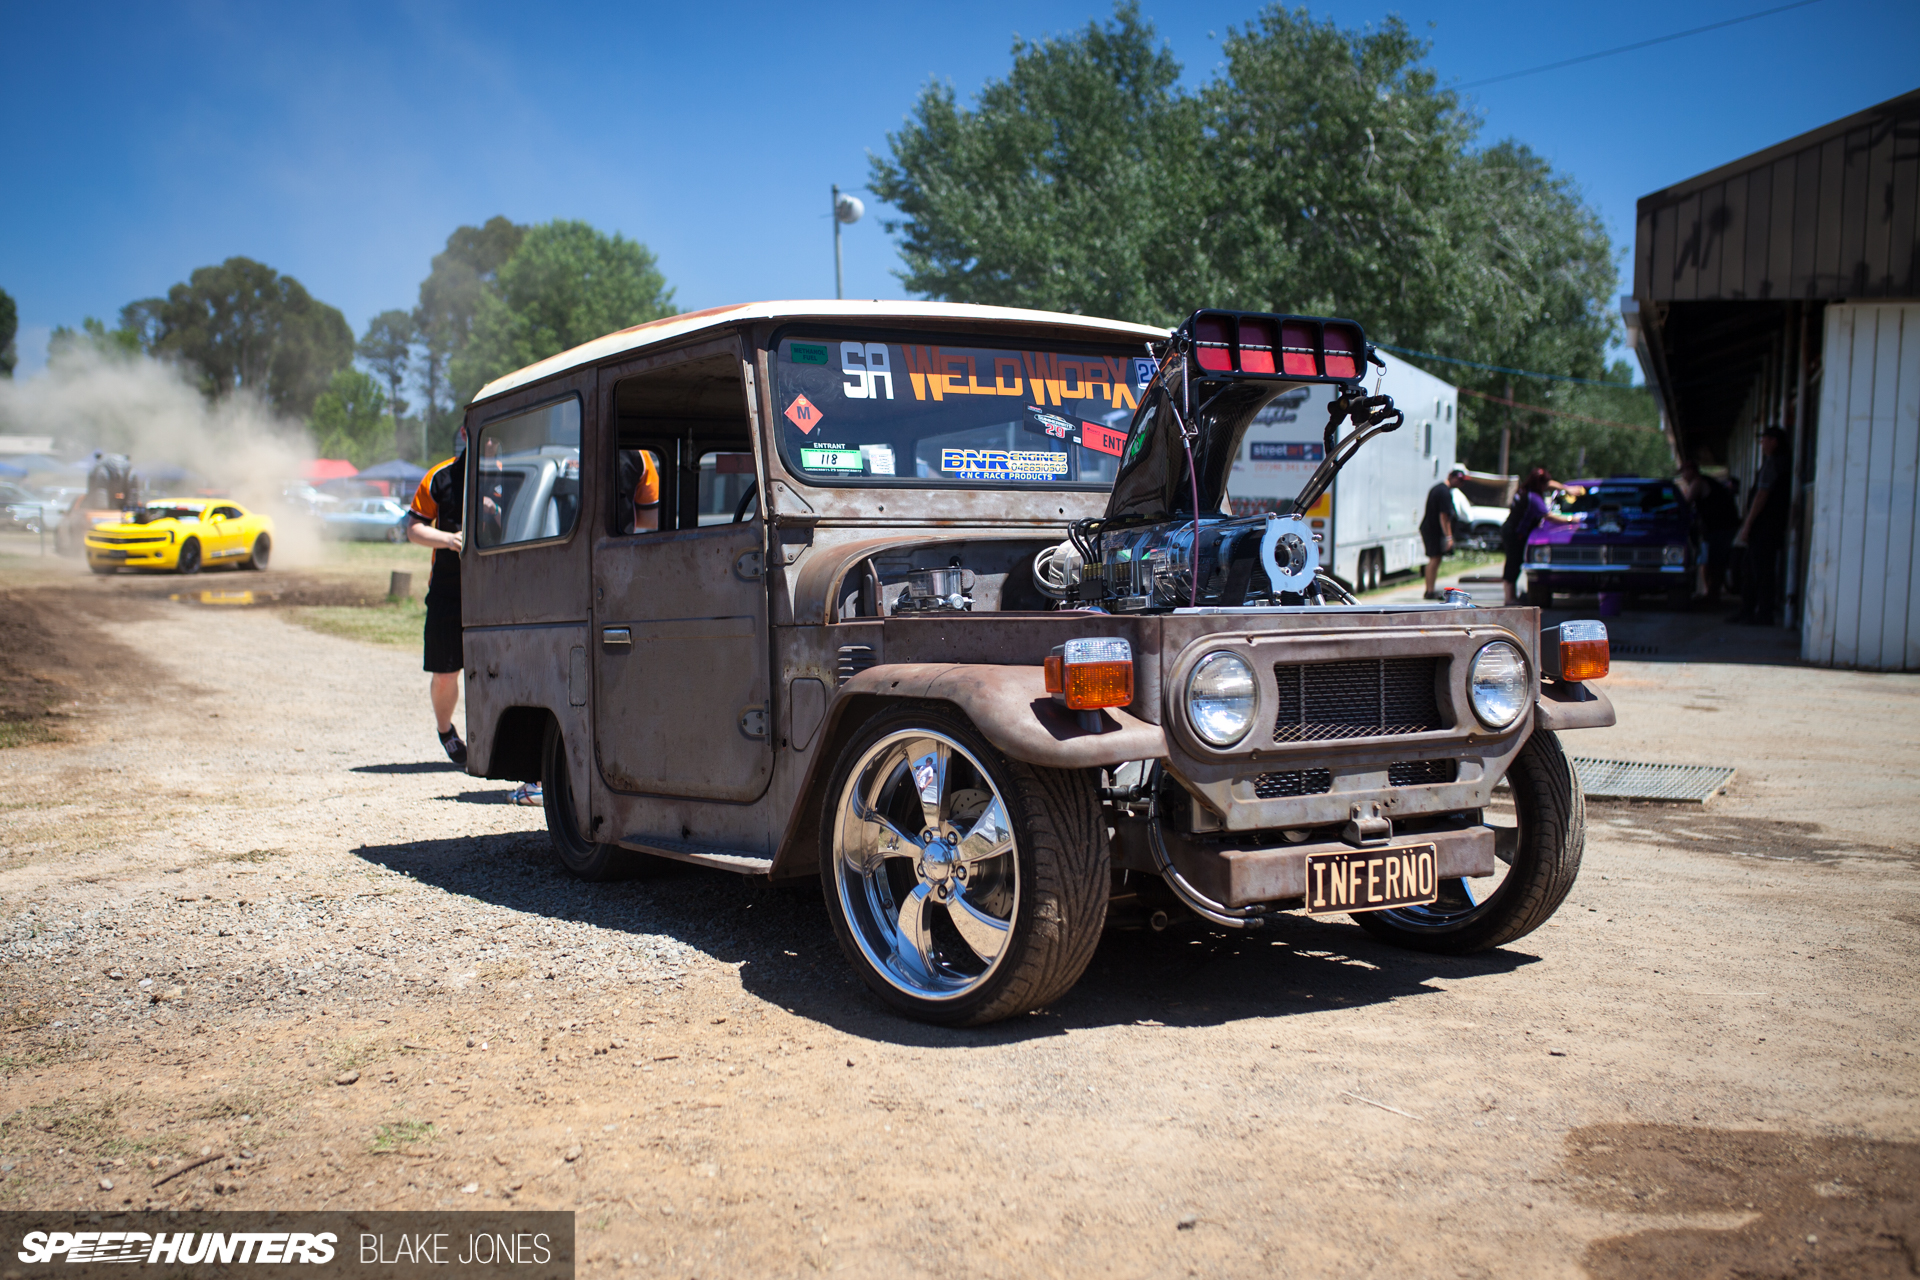 The FJ40 Smoke Machine